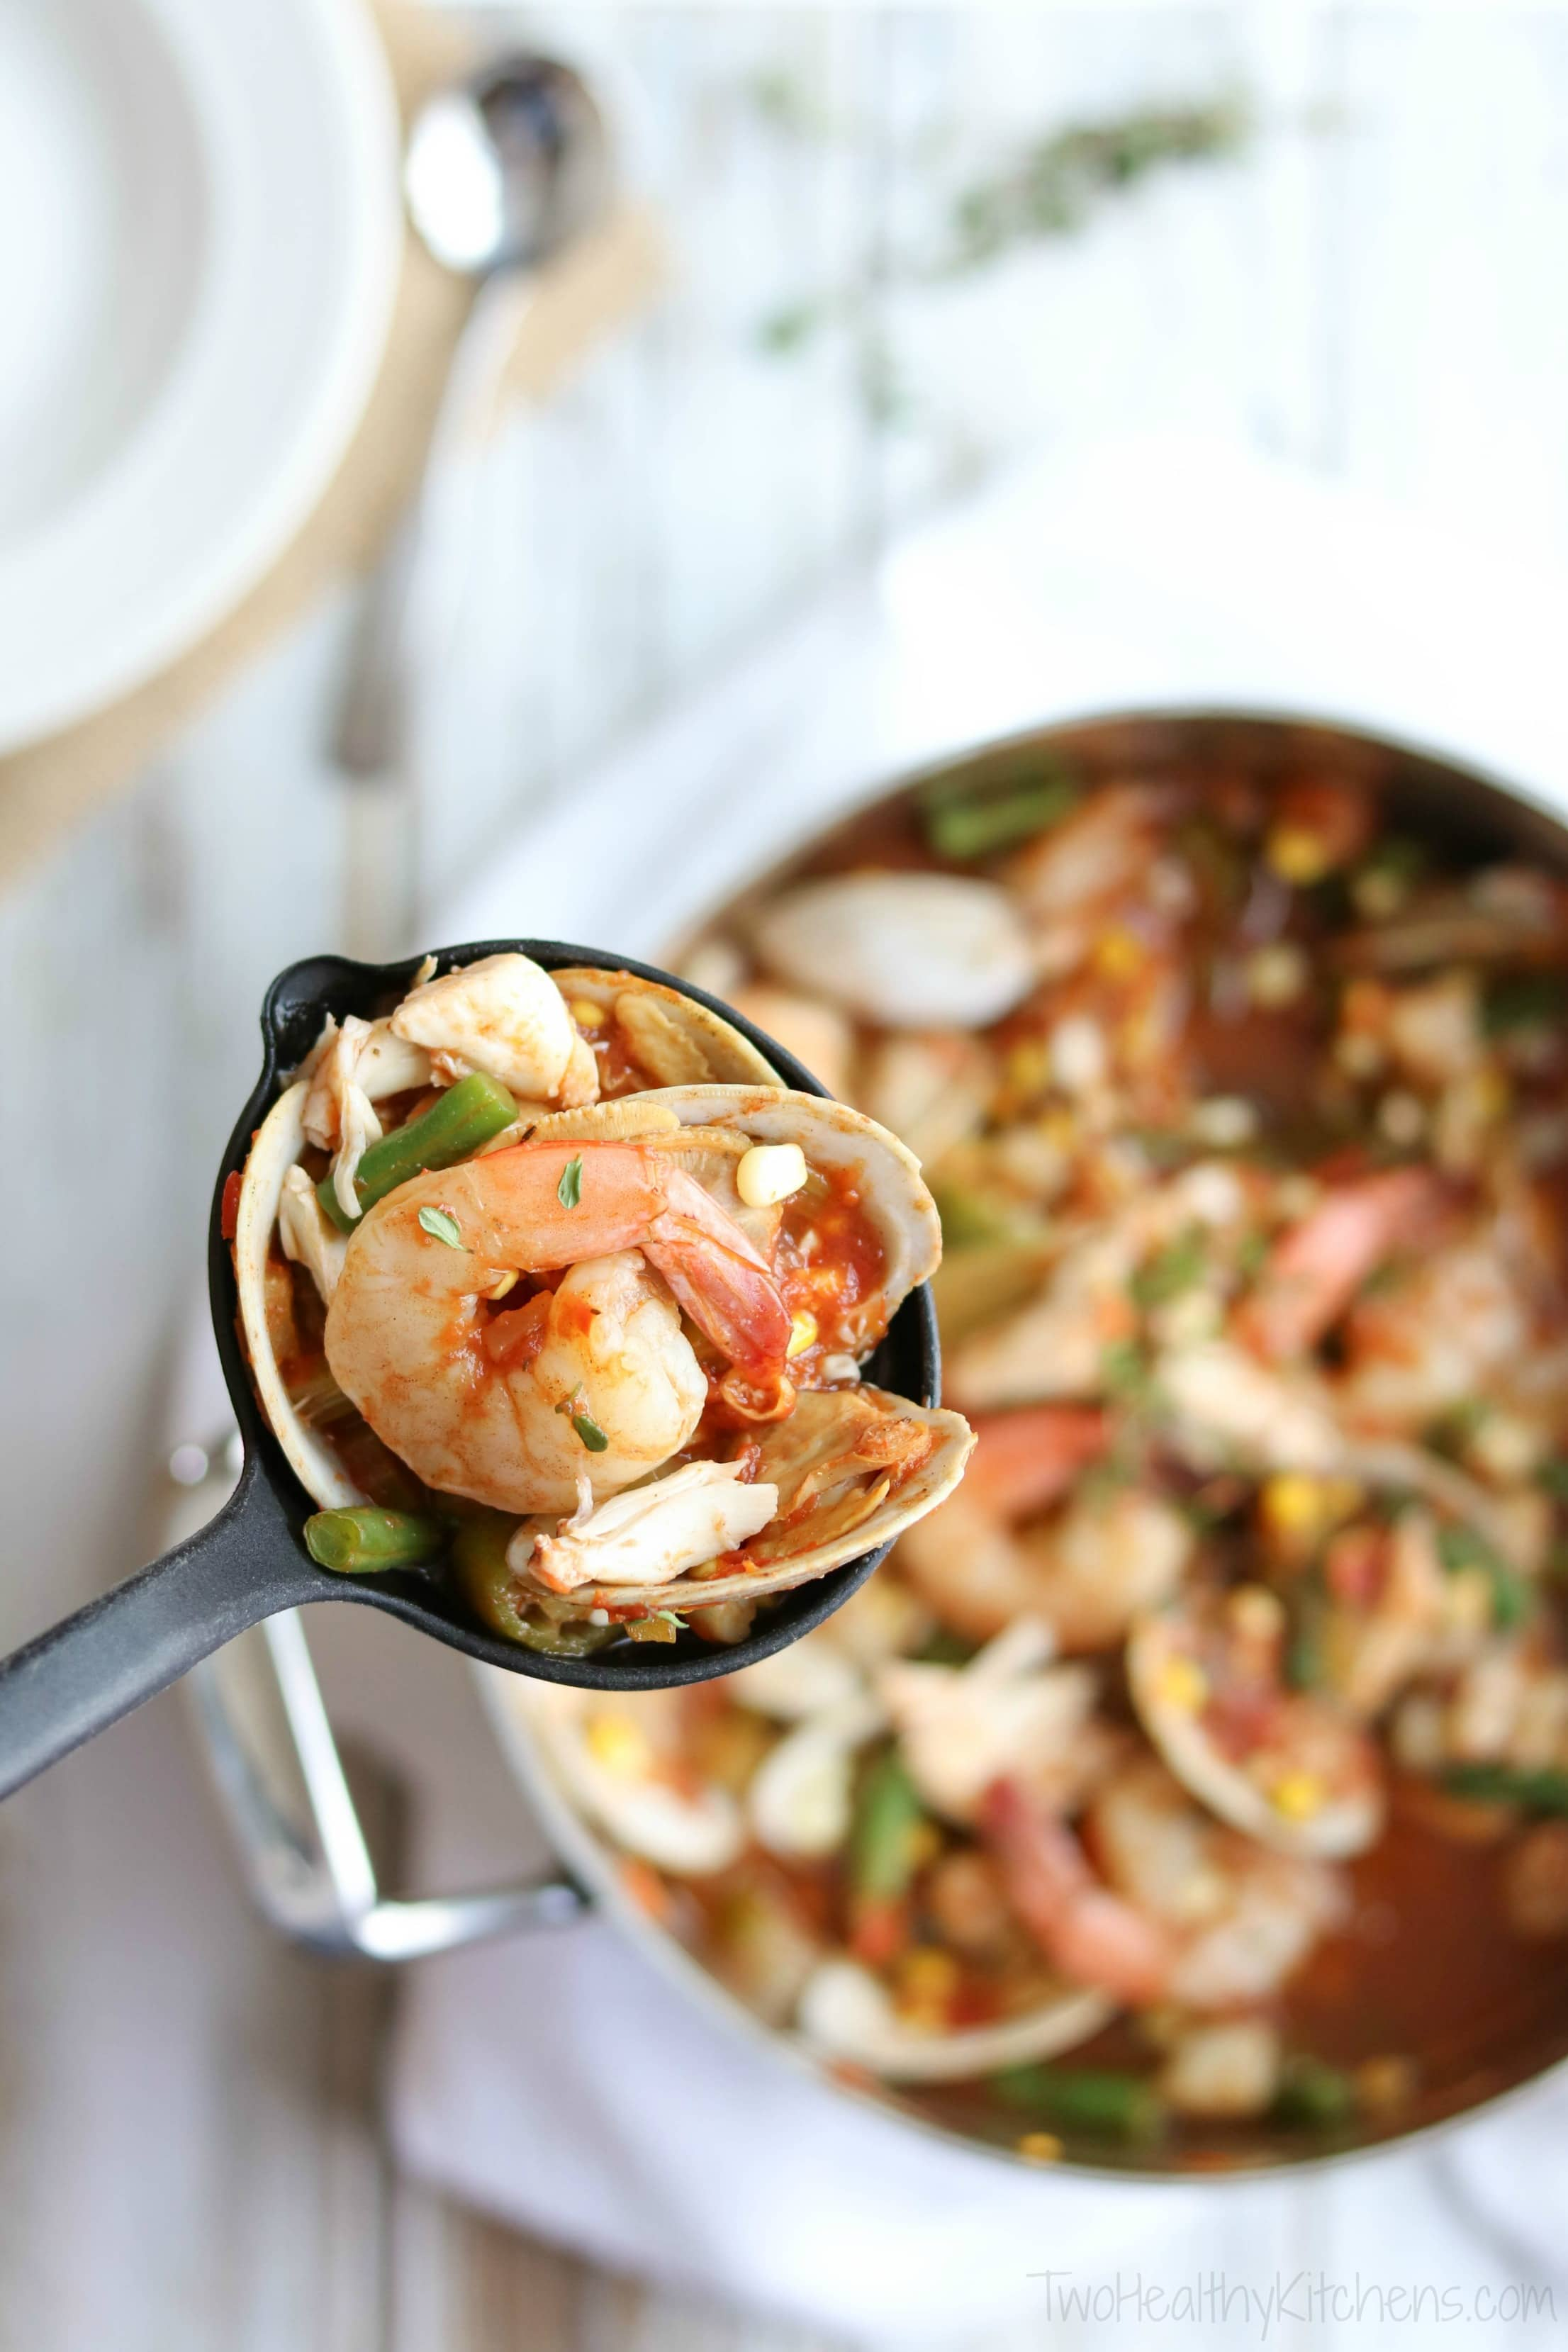 This Sea Island Seafood Stew is a showstopper for dinner parties! But with lots of make-ahead steps, it's also an easy family meal ... perfect when you need a little bit of beach in your life! It's a mainstay on the menu at the hugely popular Skull Creek Boathouse in Hilton Head, South Carolina. | www.TwoHealthyKitchens.com